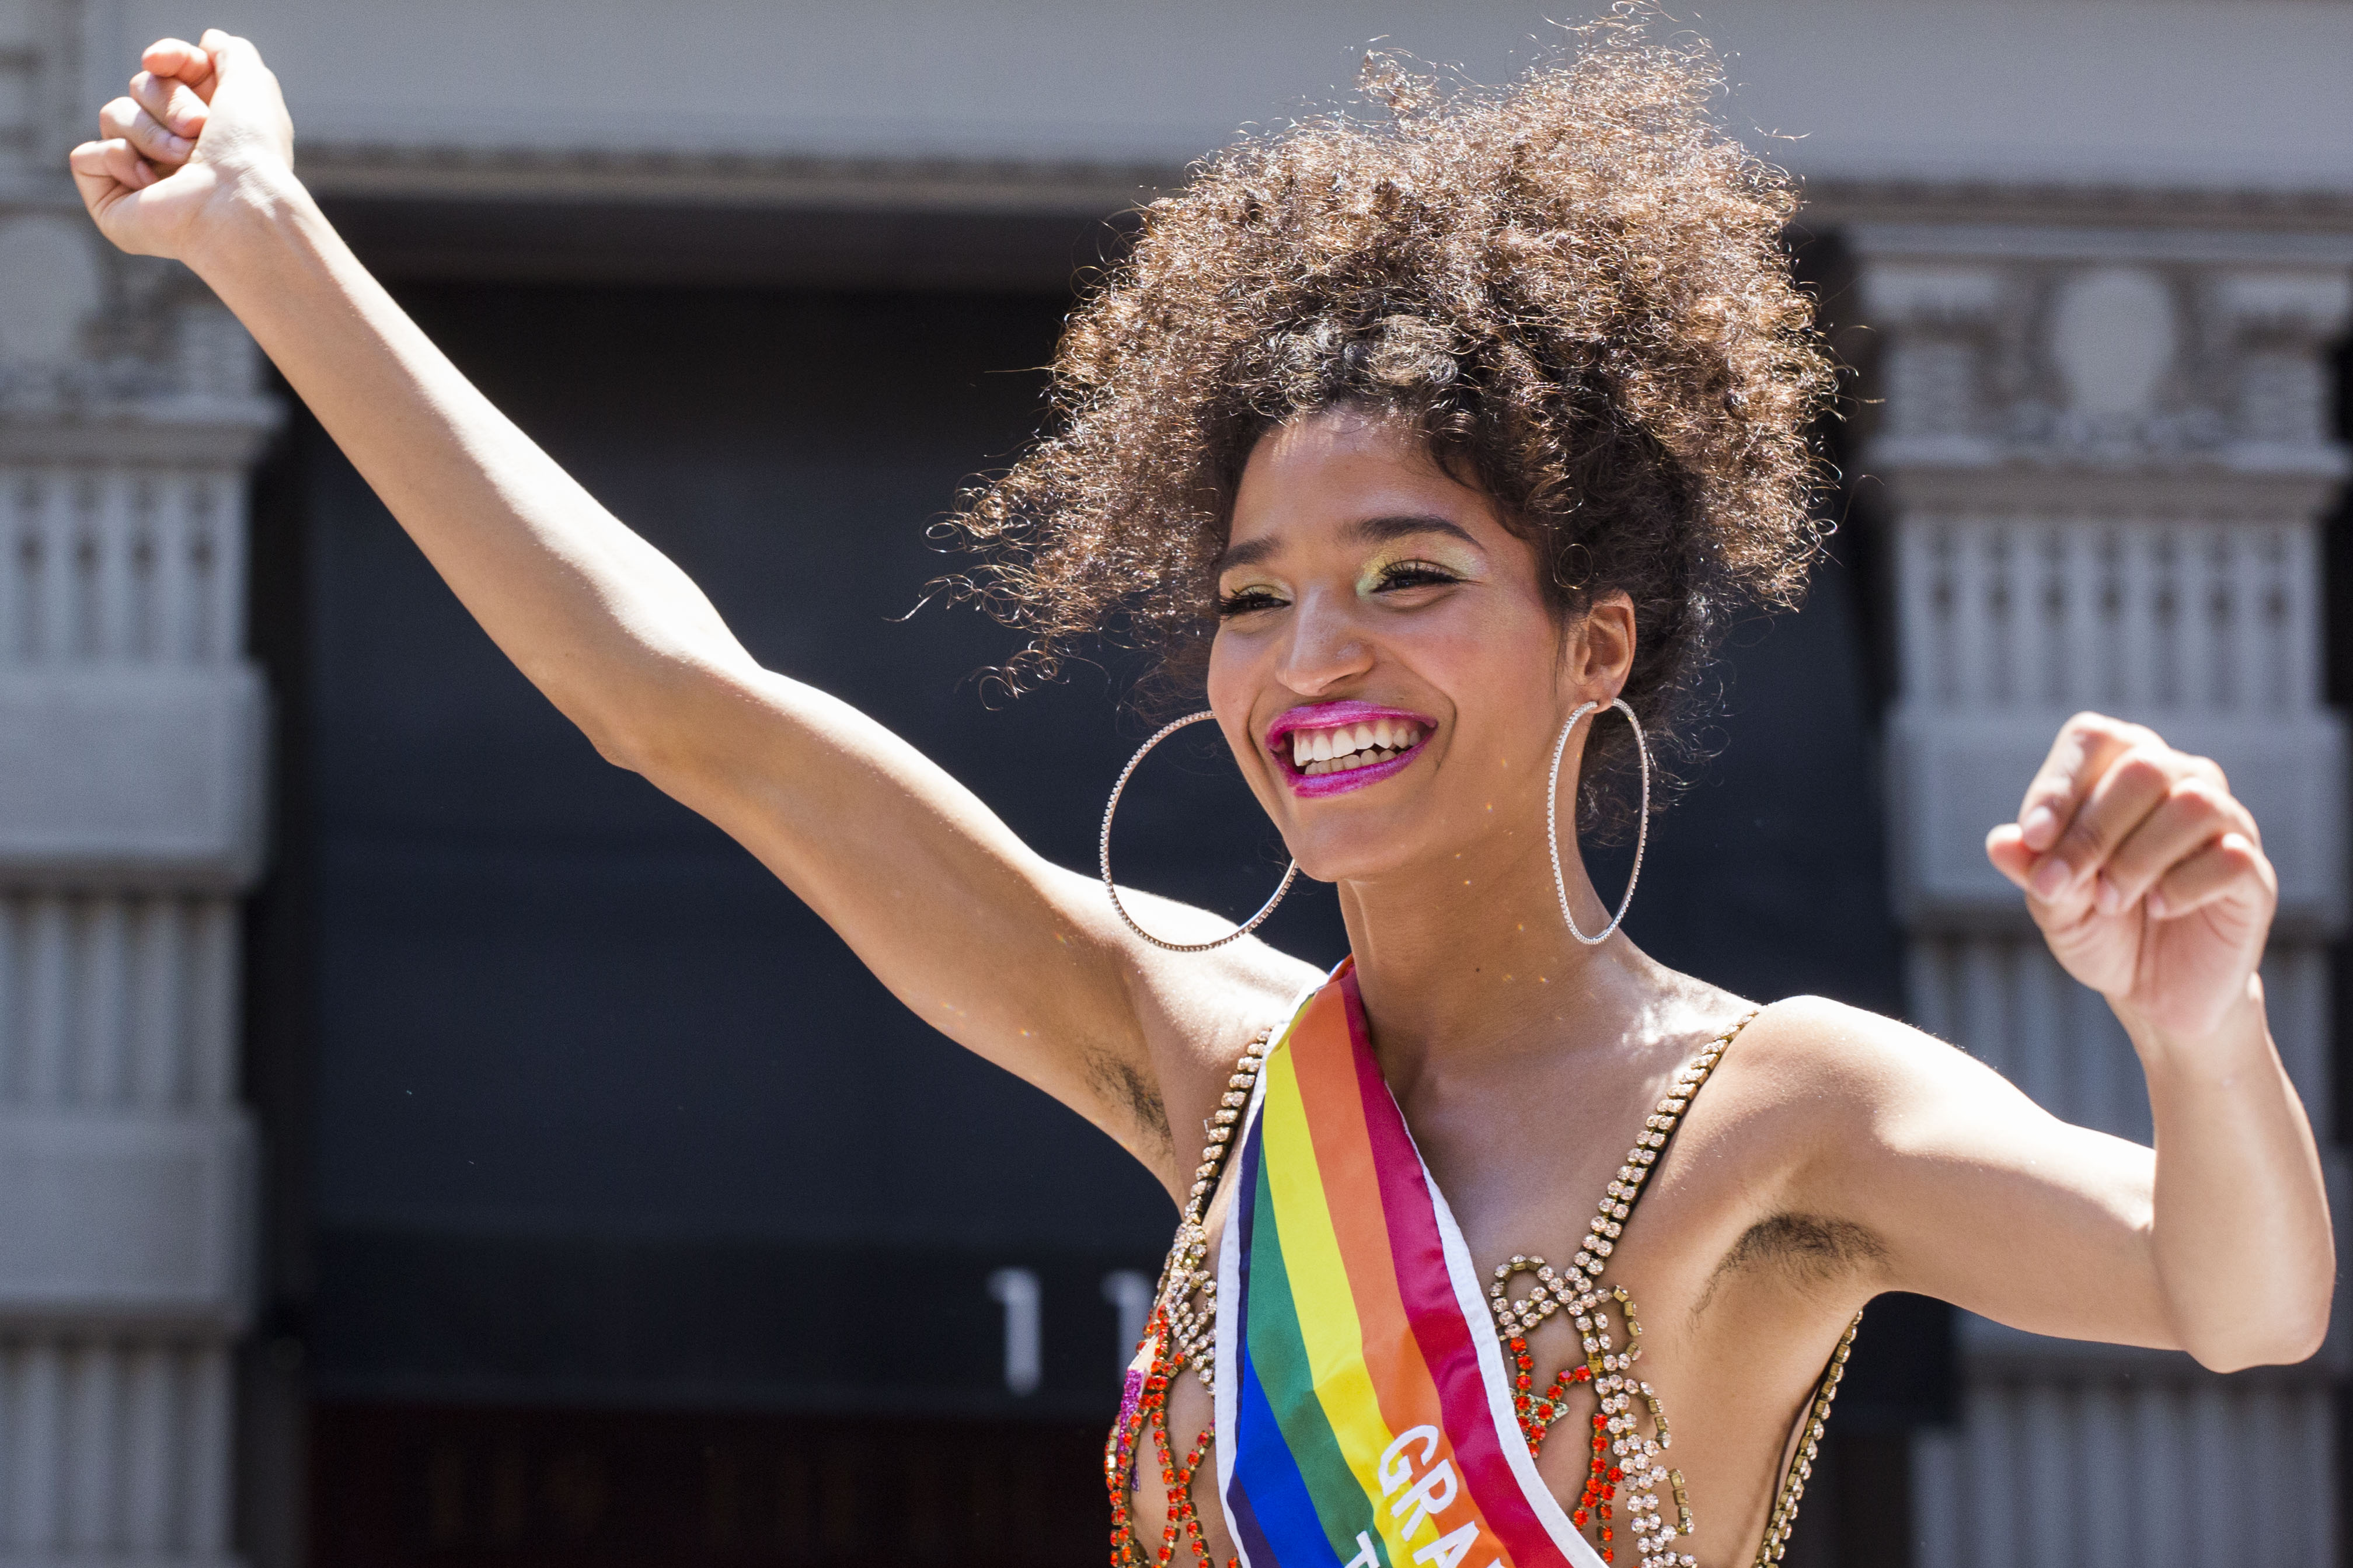 Indya Moore opens up about being gaslit 'every day' as a Black American